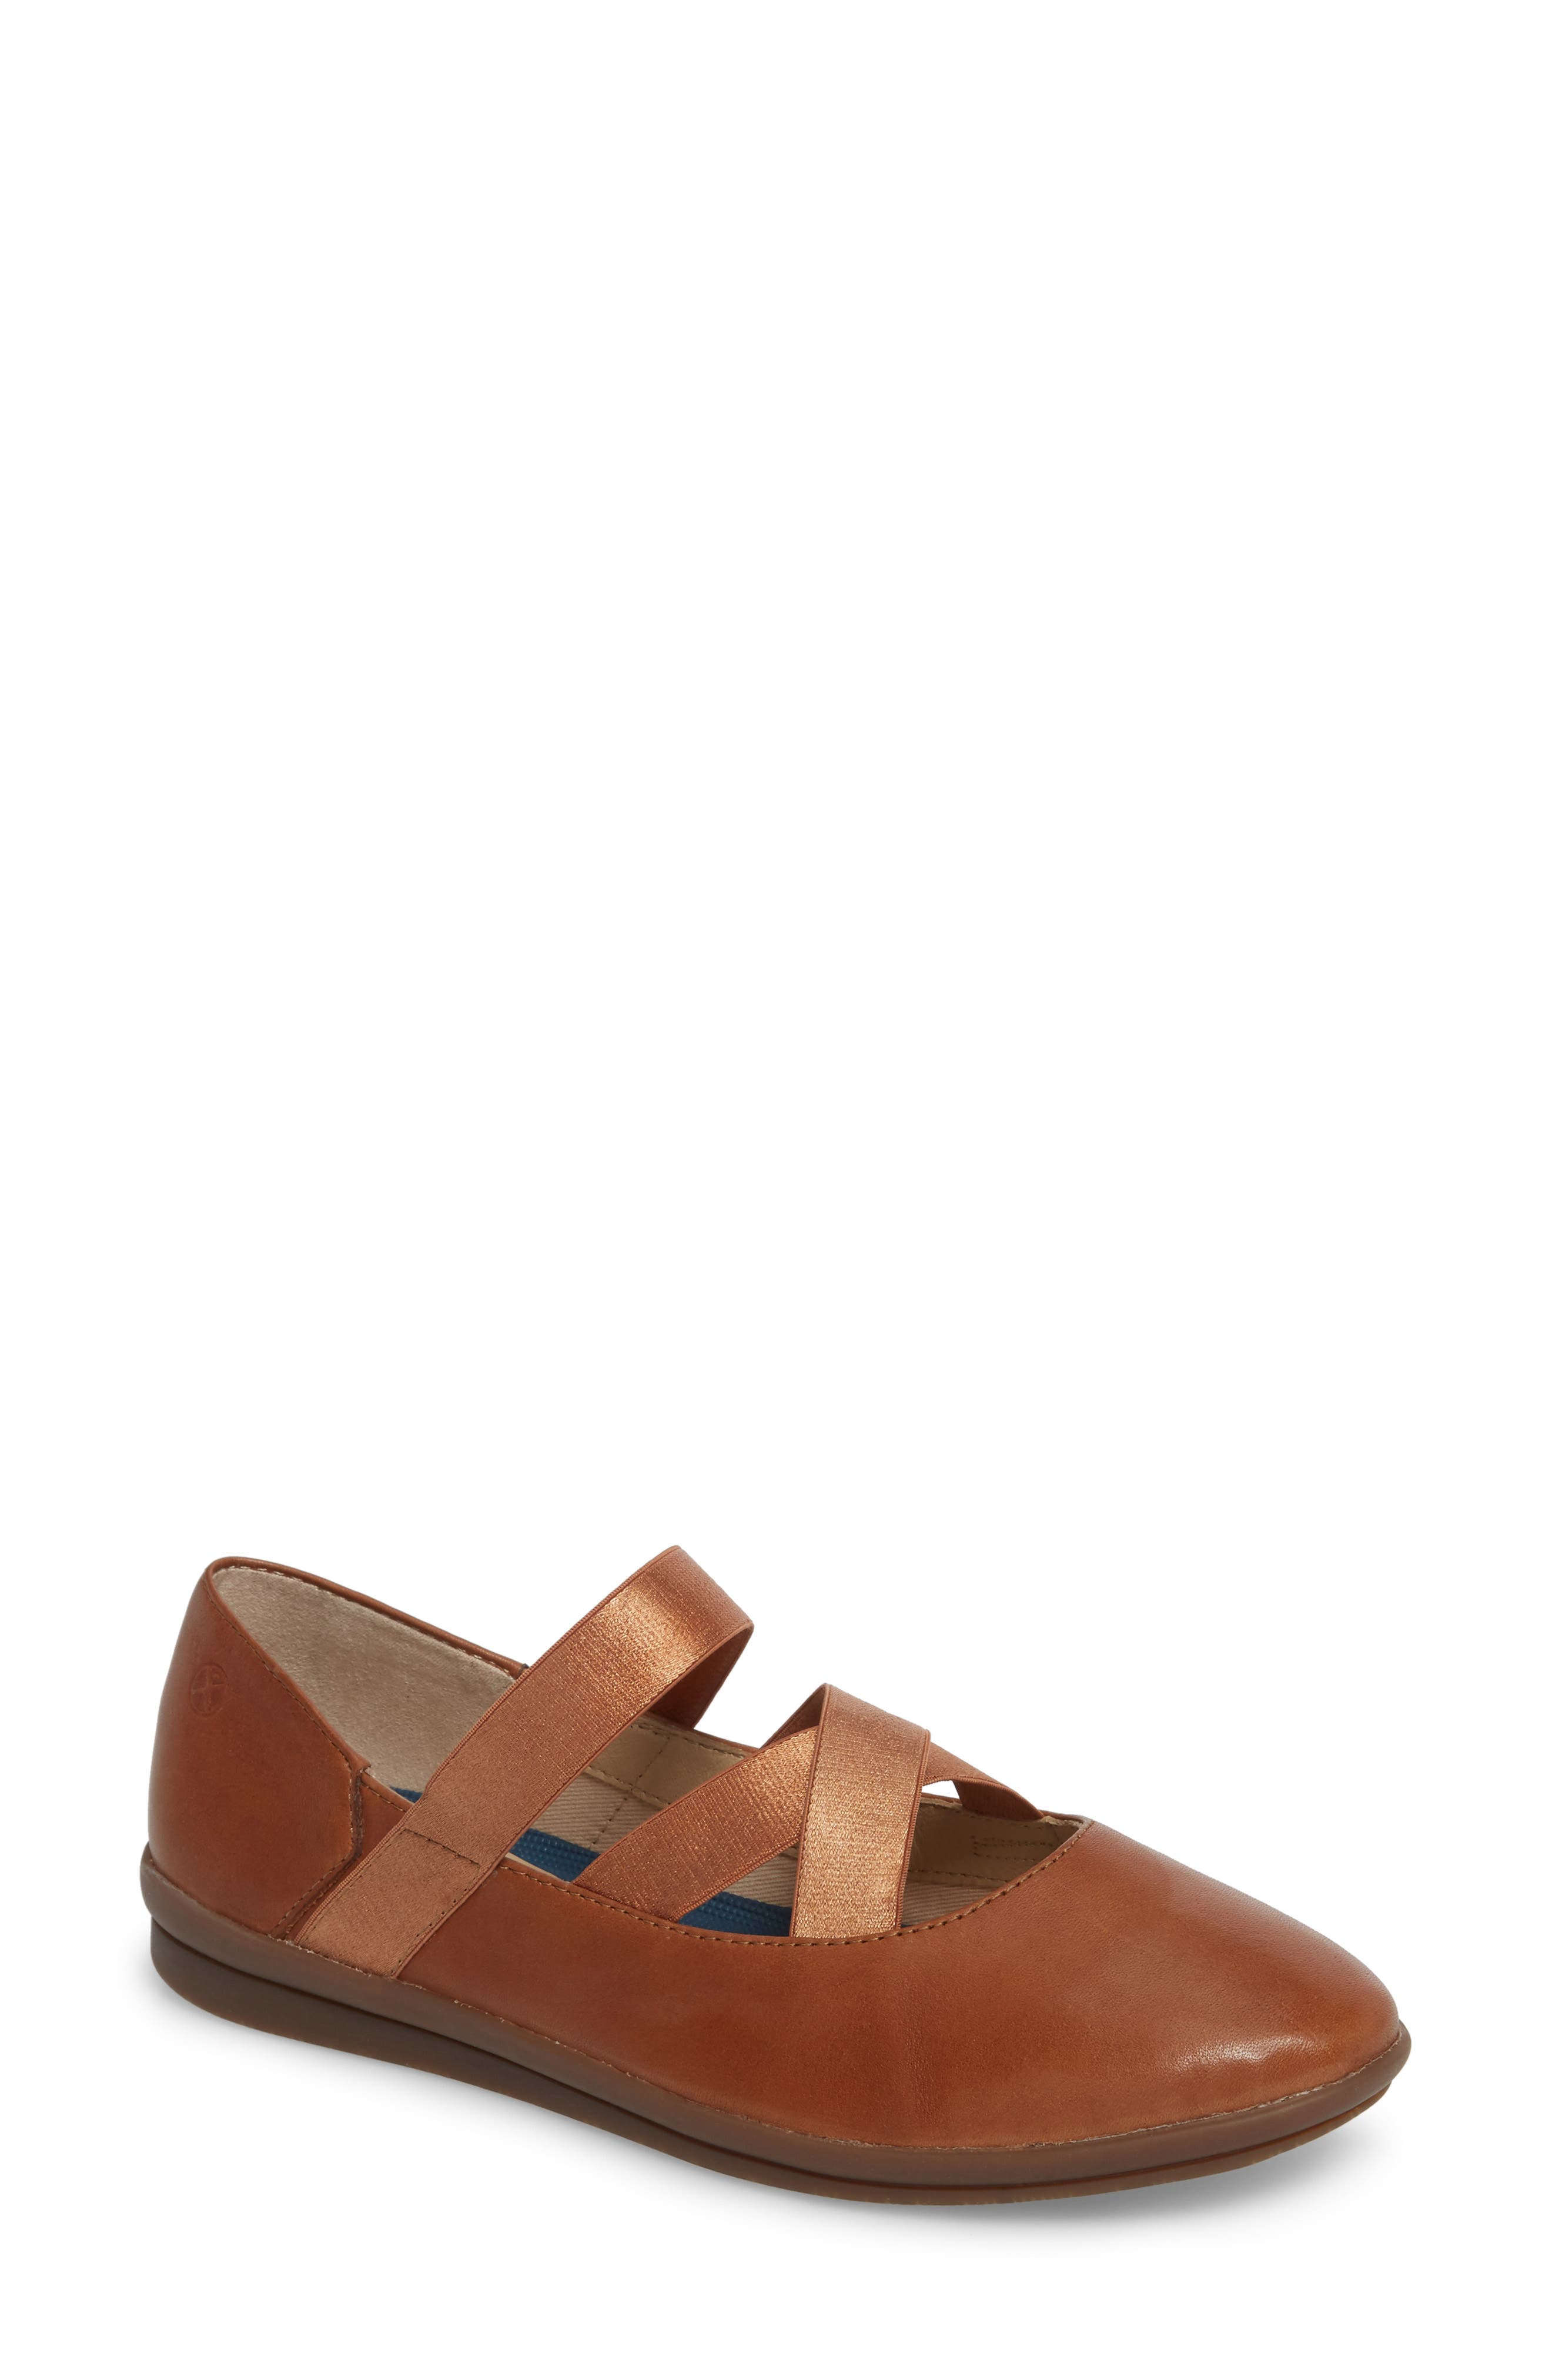 Alternate Image 1 Selected - Hush Puppies® Meree Madrine Cross Strap Flat (Women)